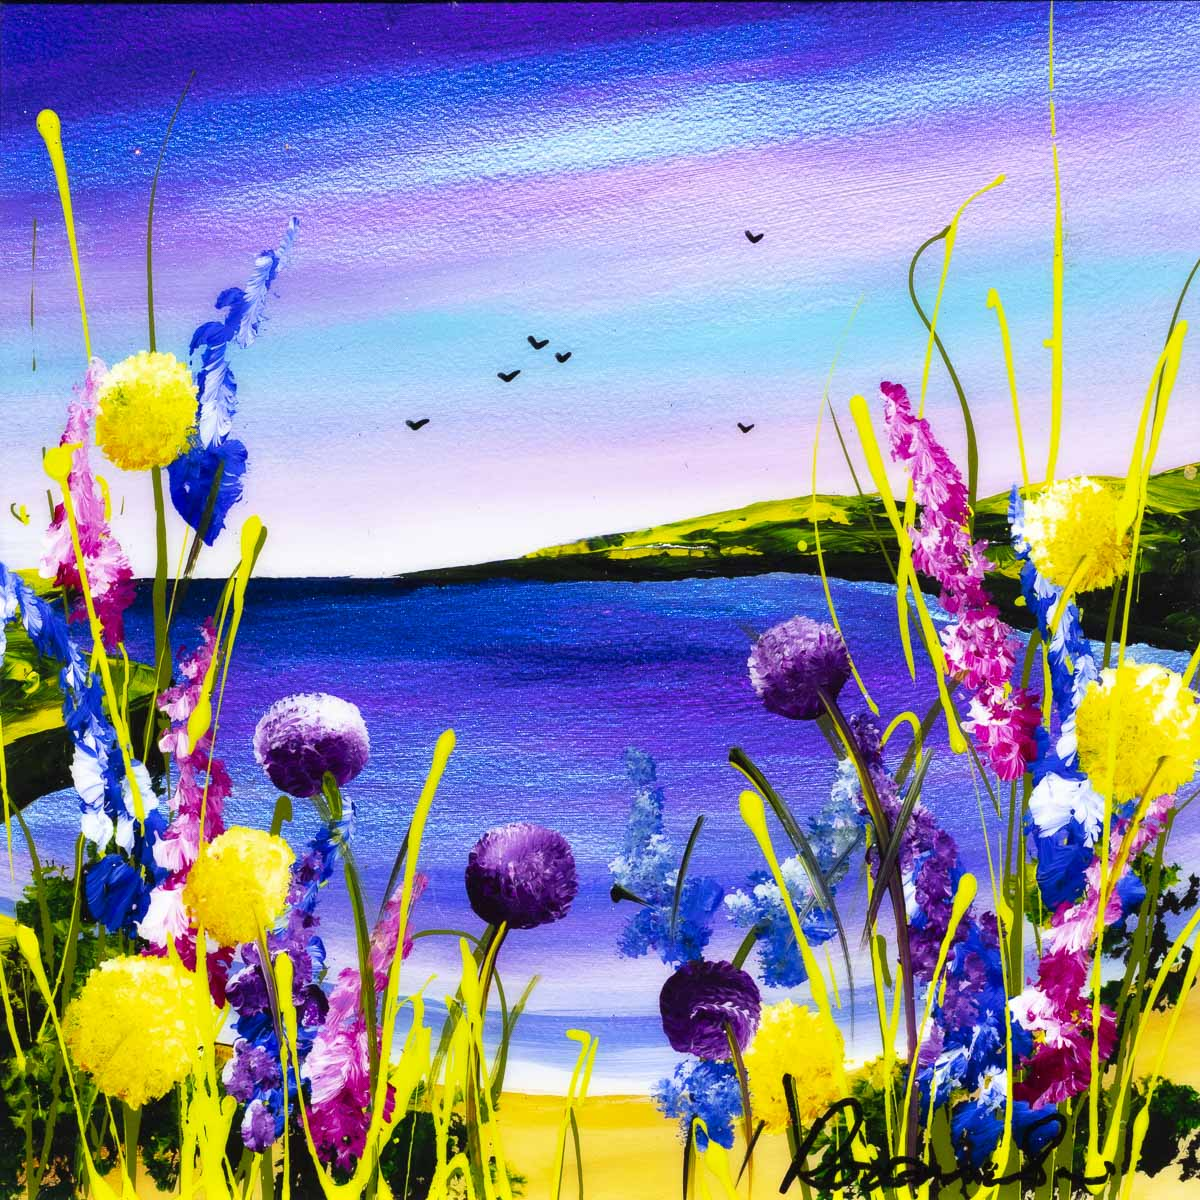 Seaside Blooms II - Original - SOLD